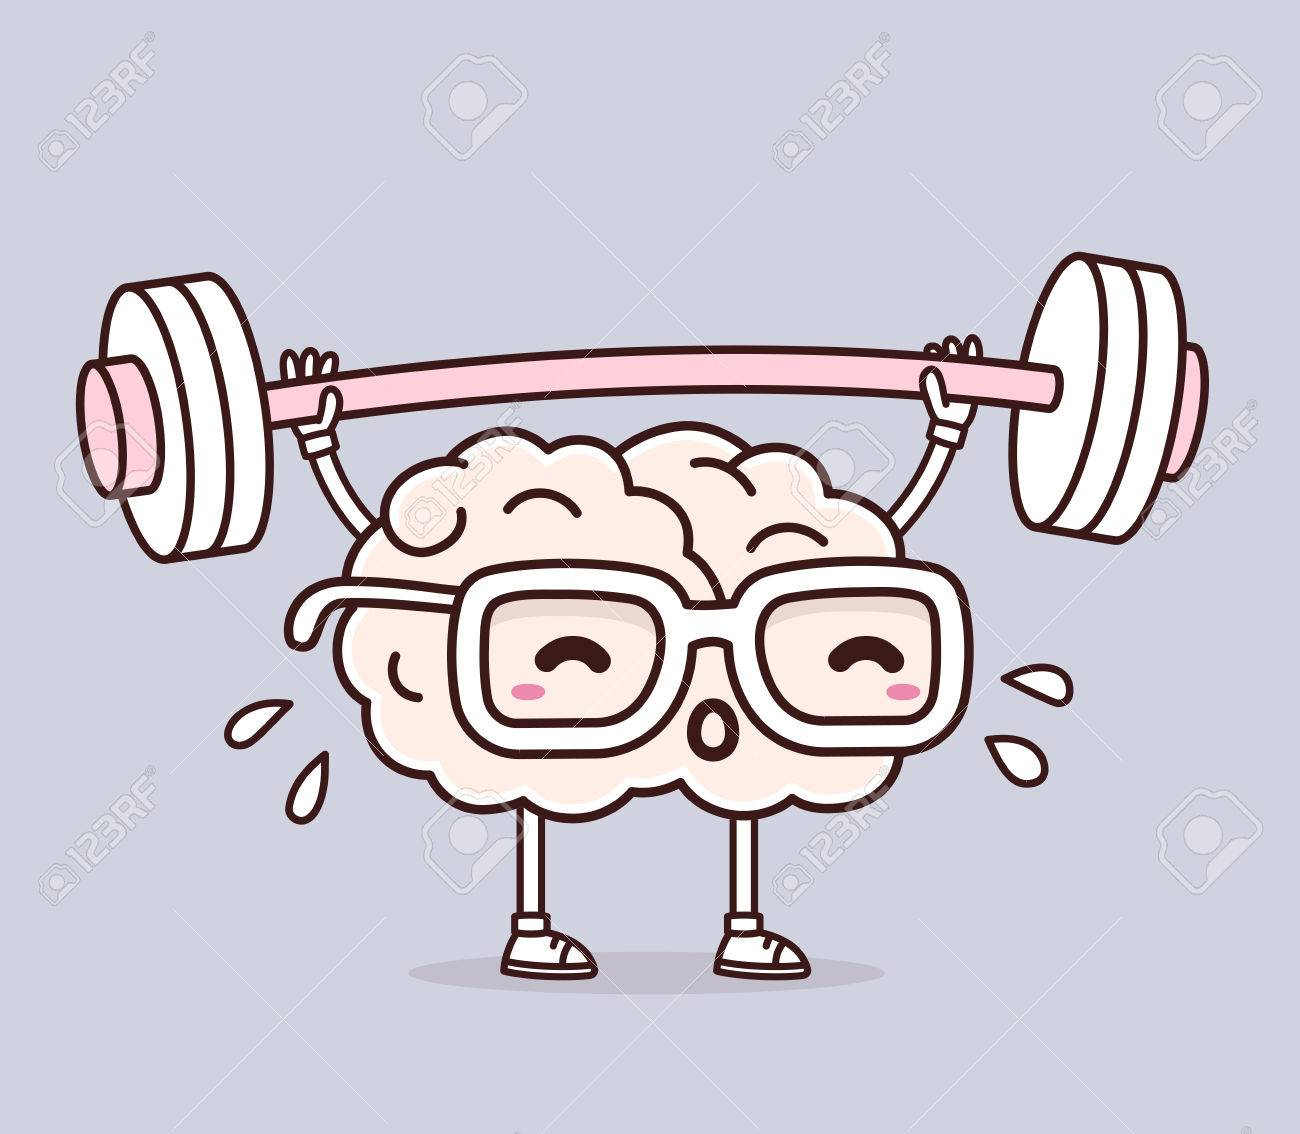 Vector illustration of retro pastel color pink brain with glasses lifting weights on gray background. Exercising cartoon brain concept. Doodle style. Thin line art flat design of character brain for sport, training, education theme - 60106358